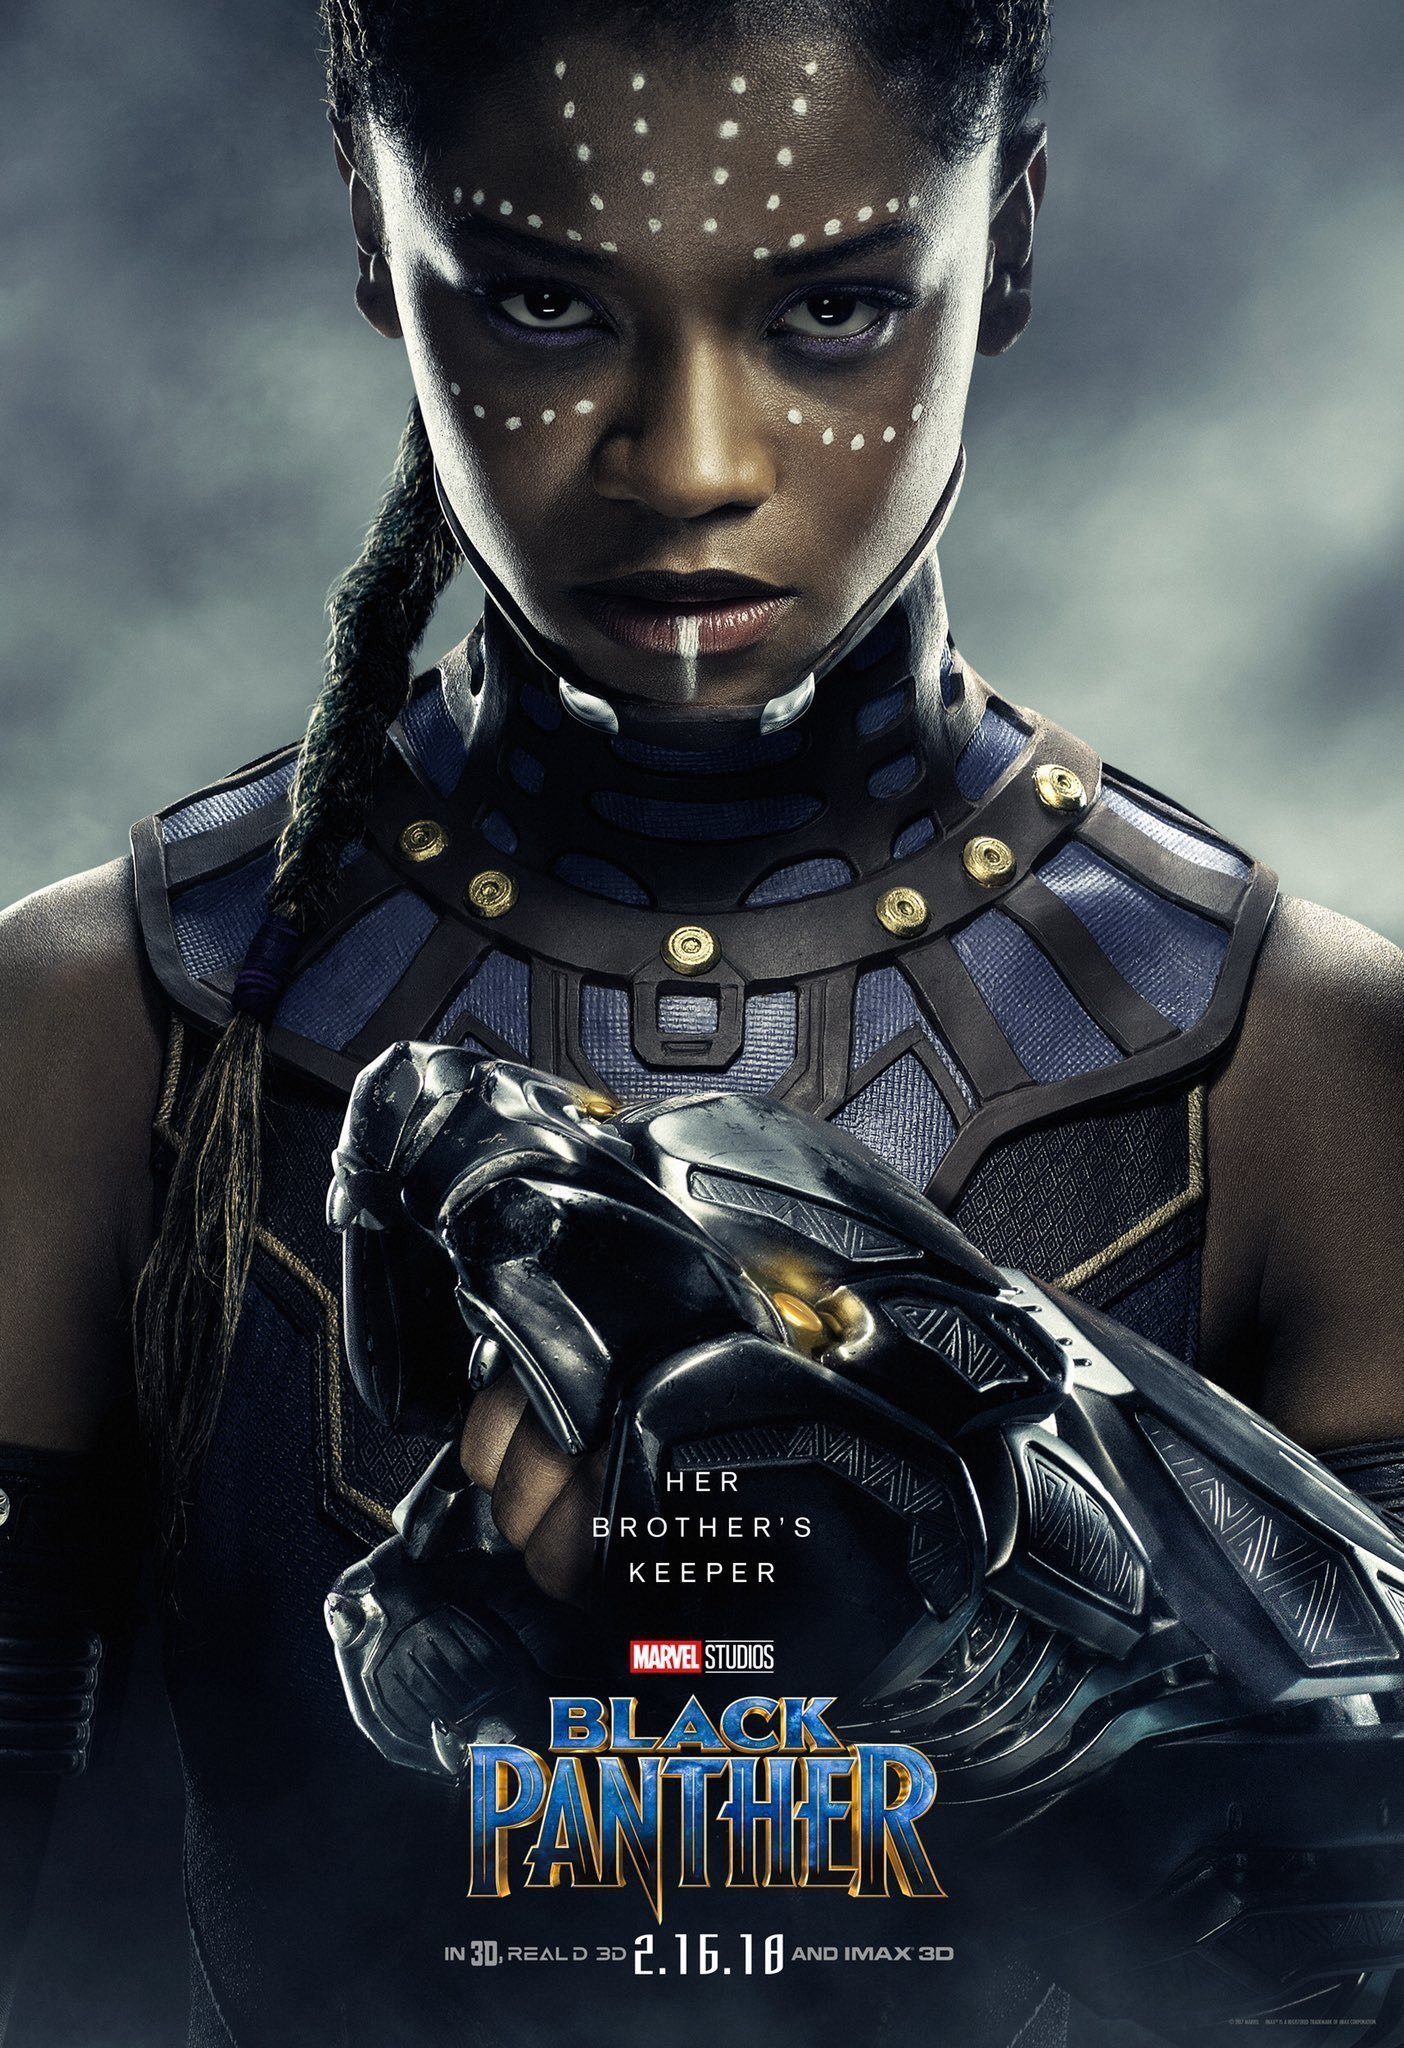 Poster du film Black Panther avec Letitia Wright (Shuri)